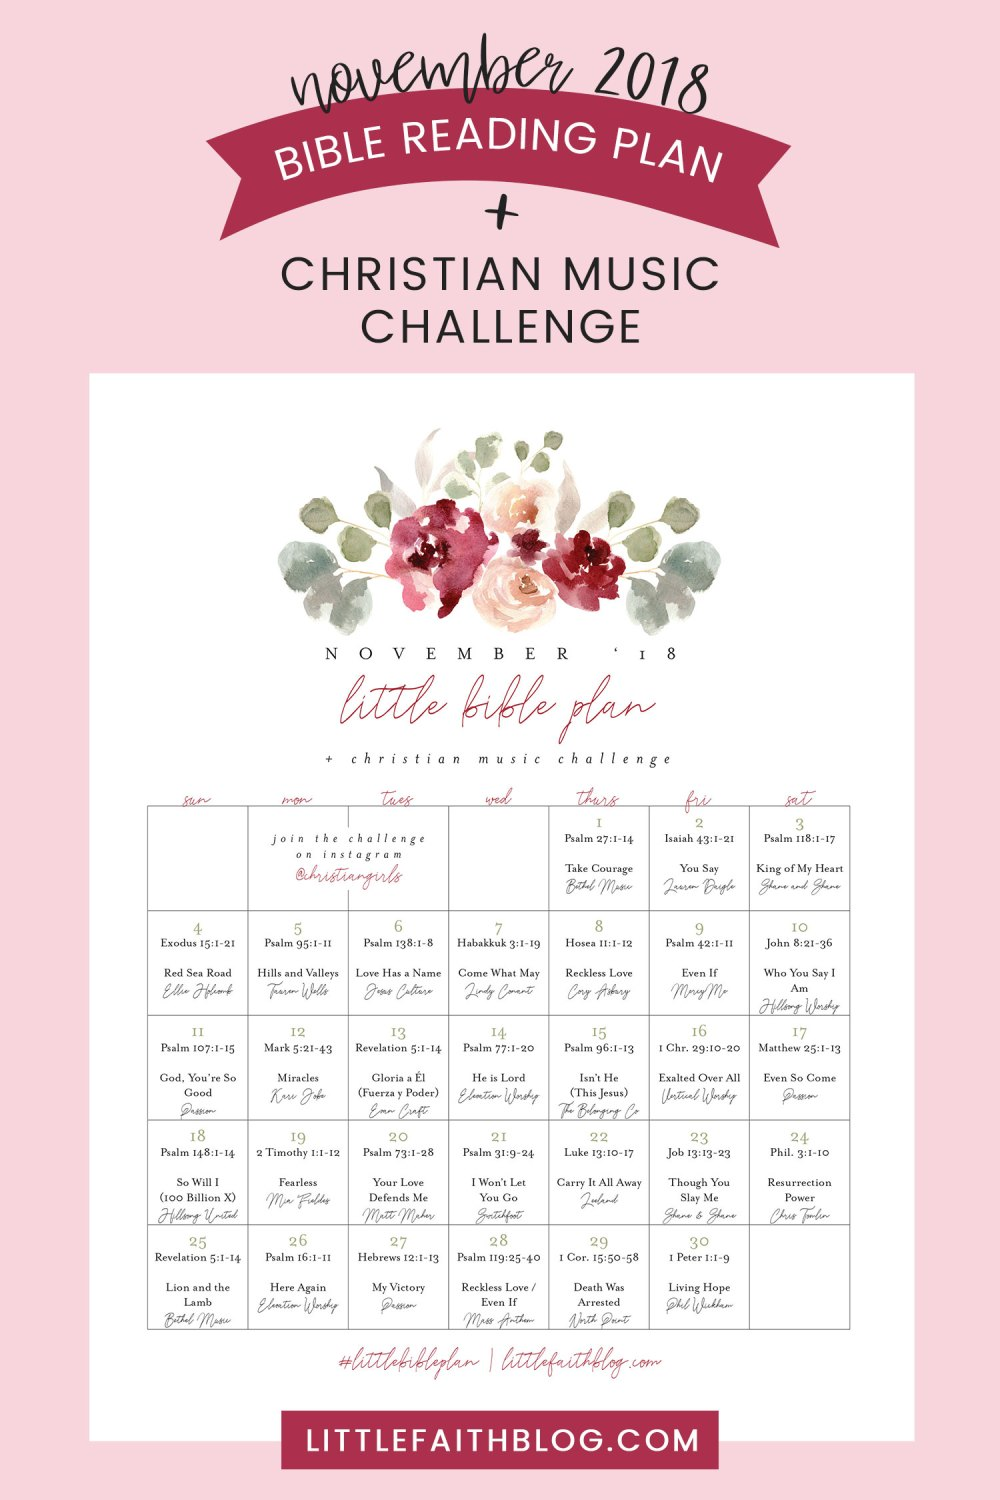 November 2018 Bible Reading Plan + Christian Music Challenge & My Worship Playlist!